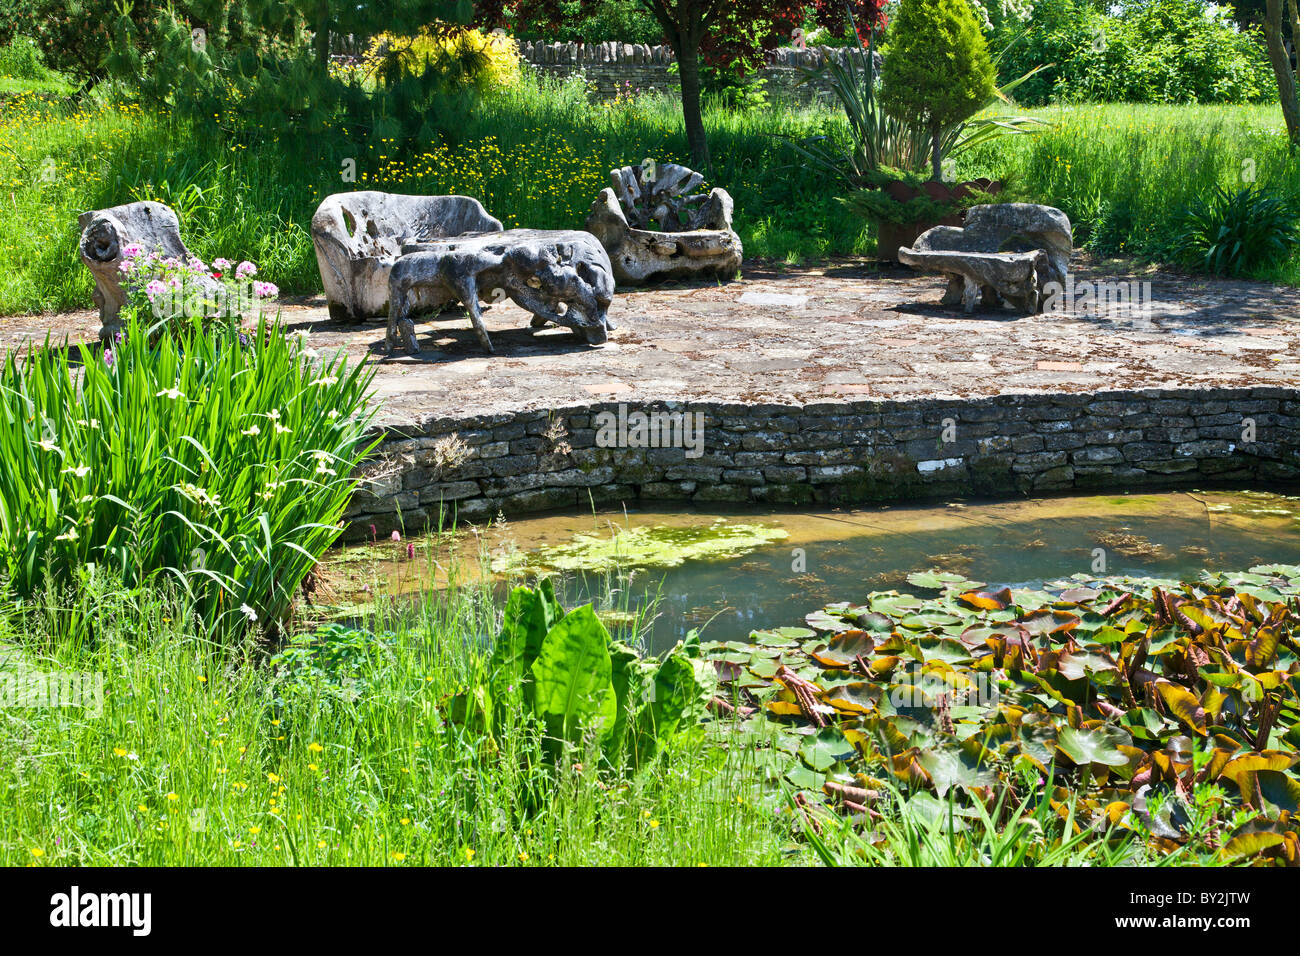 an unusual set of wooden garden furniture made out of driftwood on a terrace by a pond in an english country garden in summer